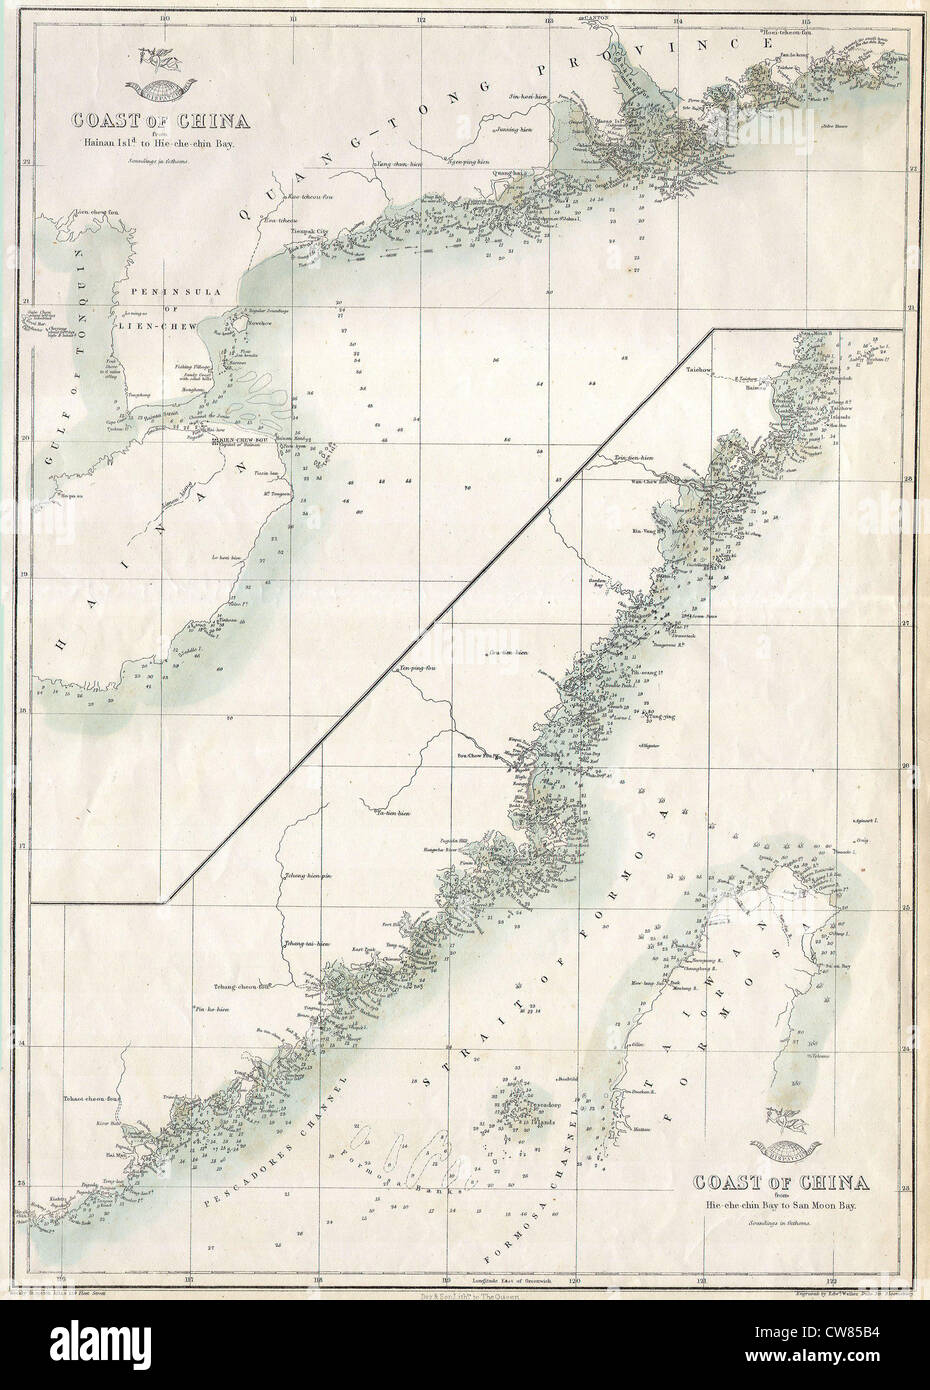 1863 'Cassell's Dispatch Atlas' Map of Taiwan - Formosa ^ the Hainan Coast of China - Stock Image